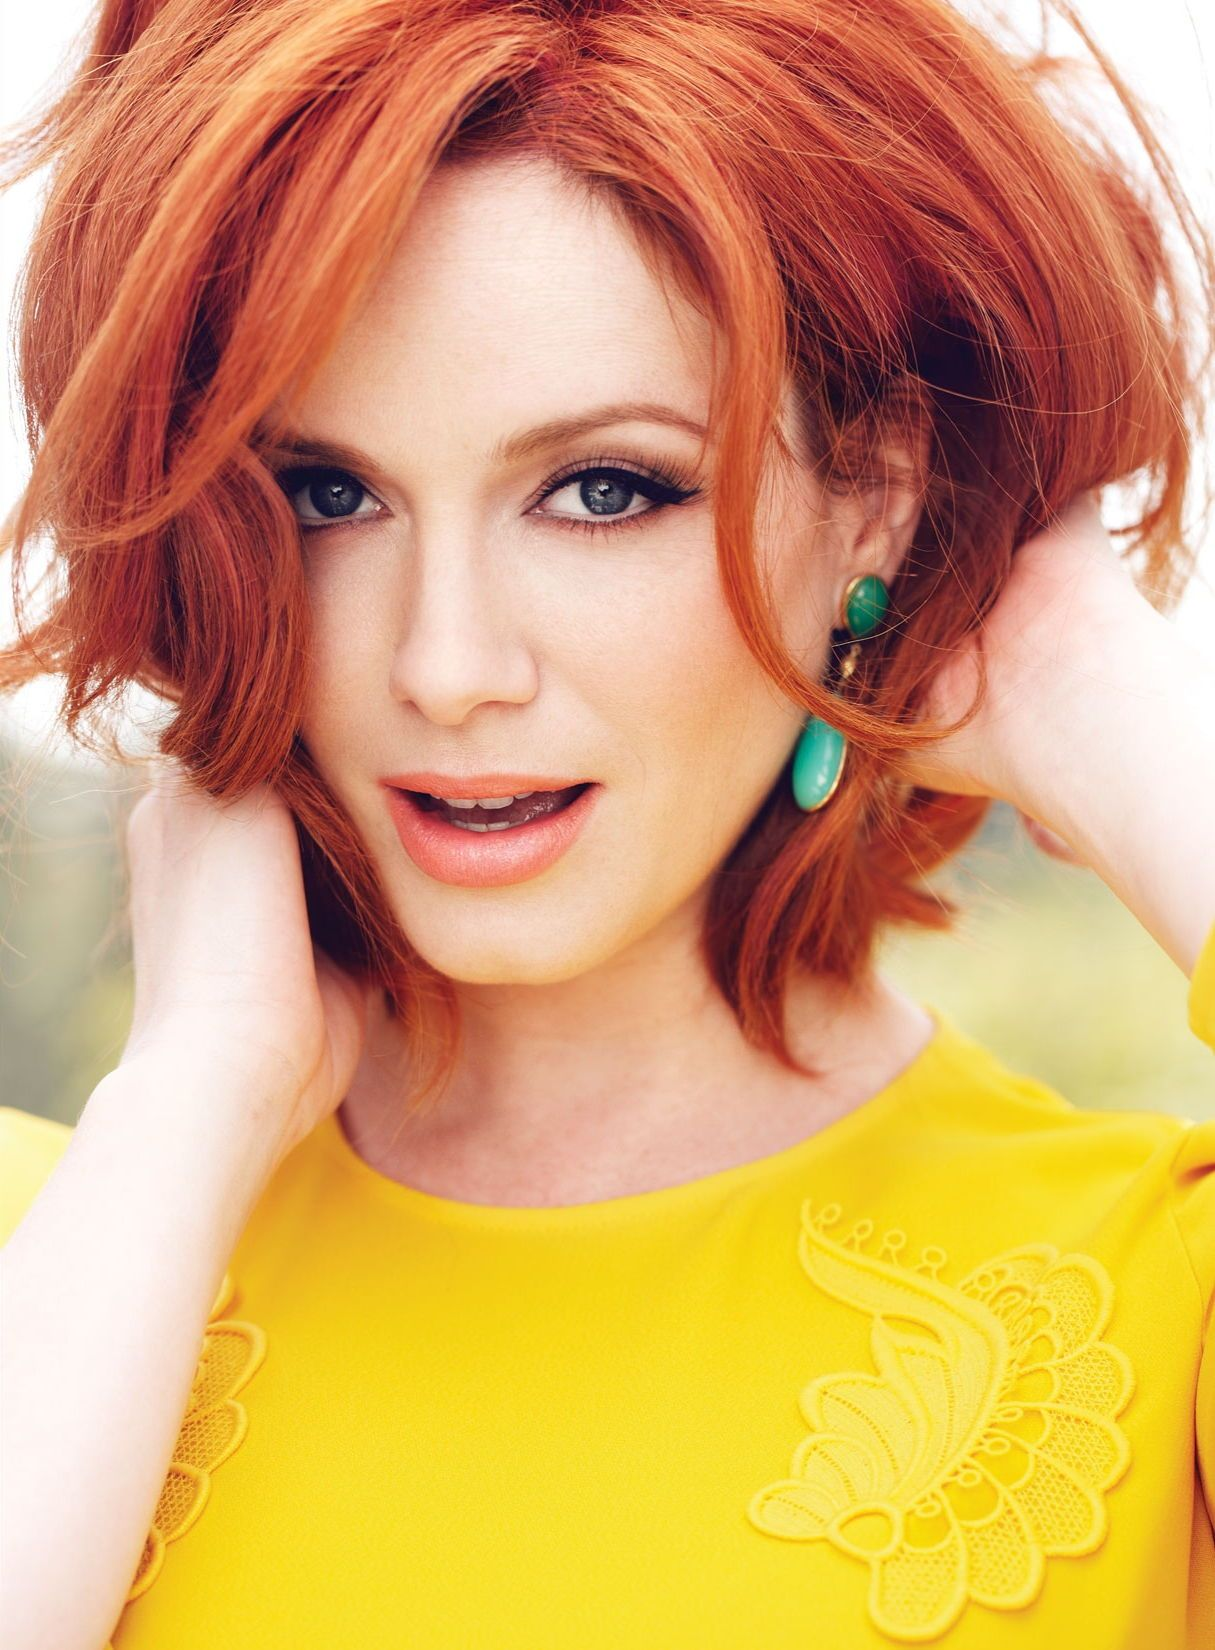 Christina hendricks christina hendricks pinterest christina